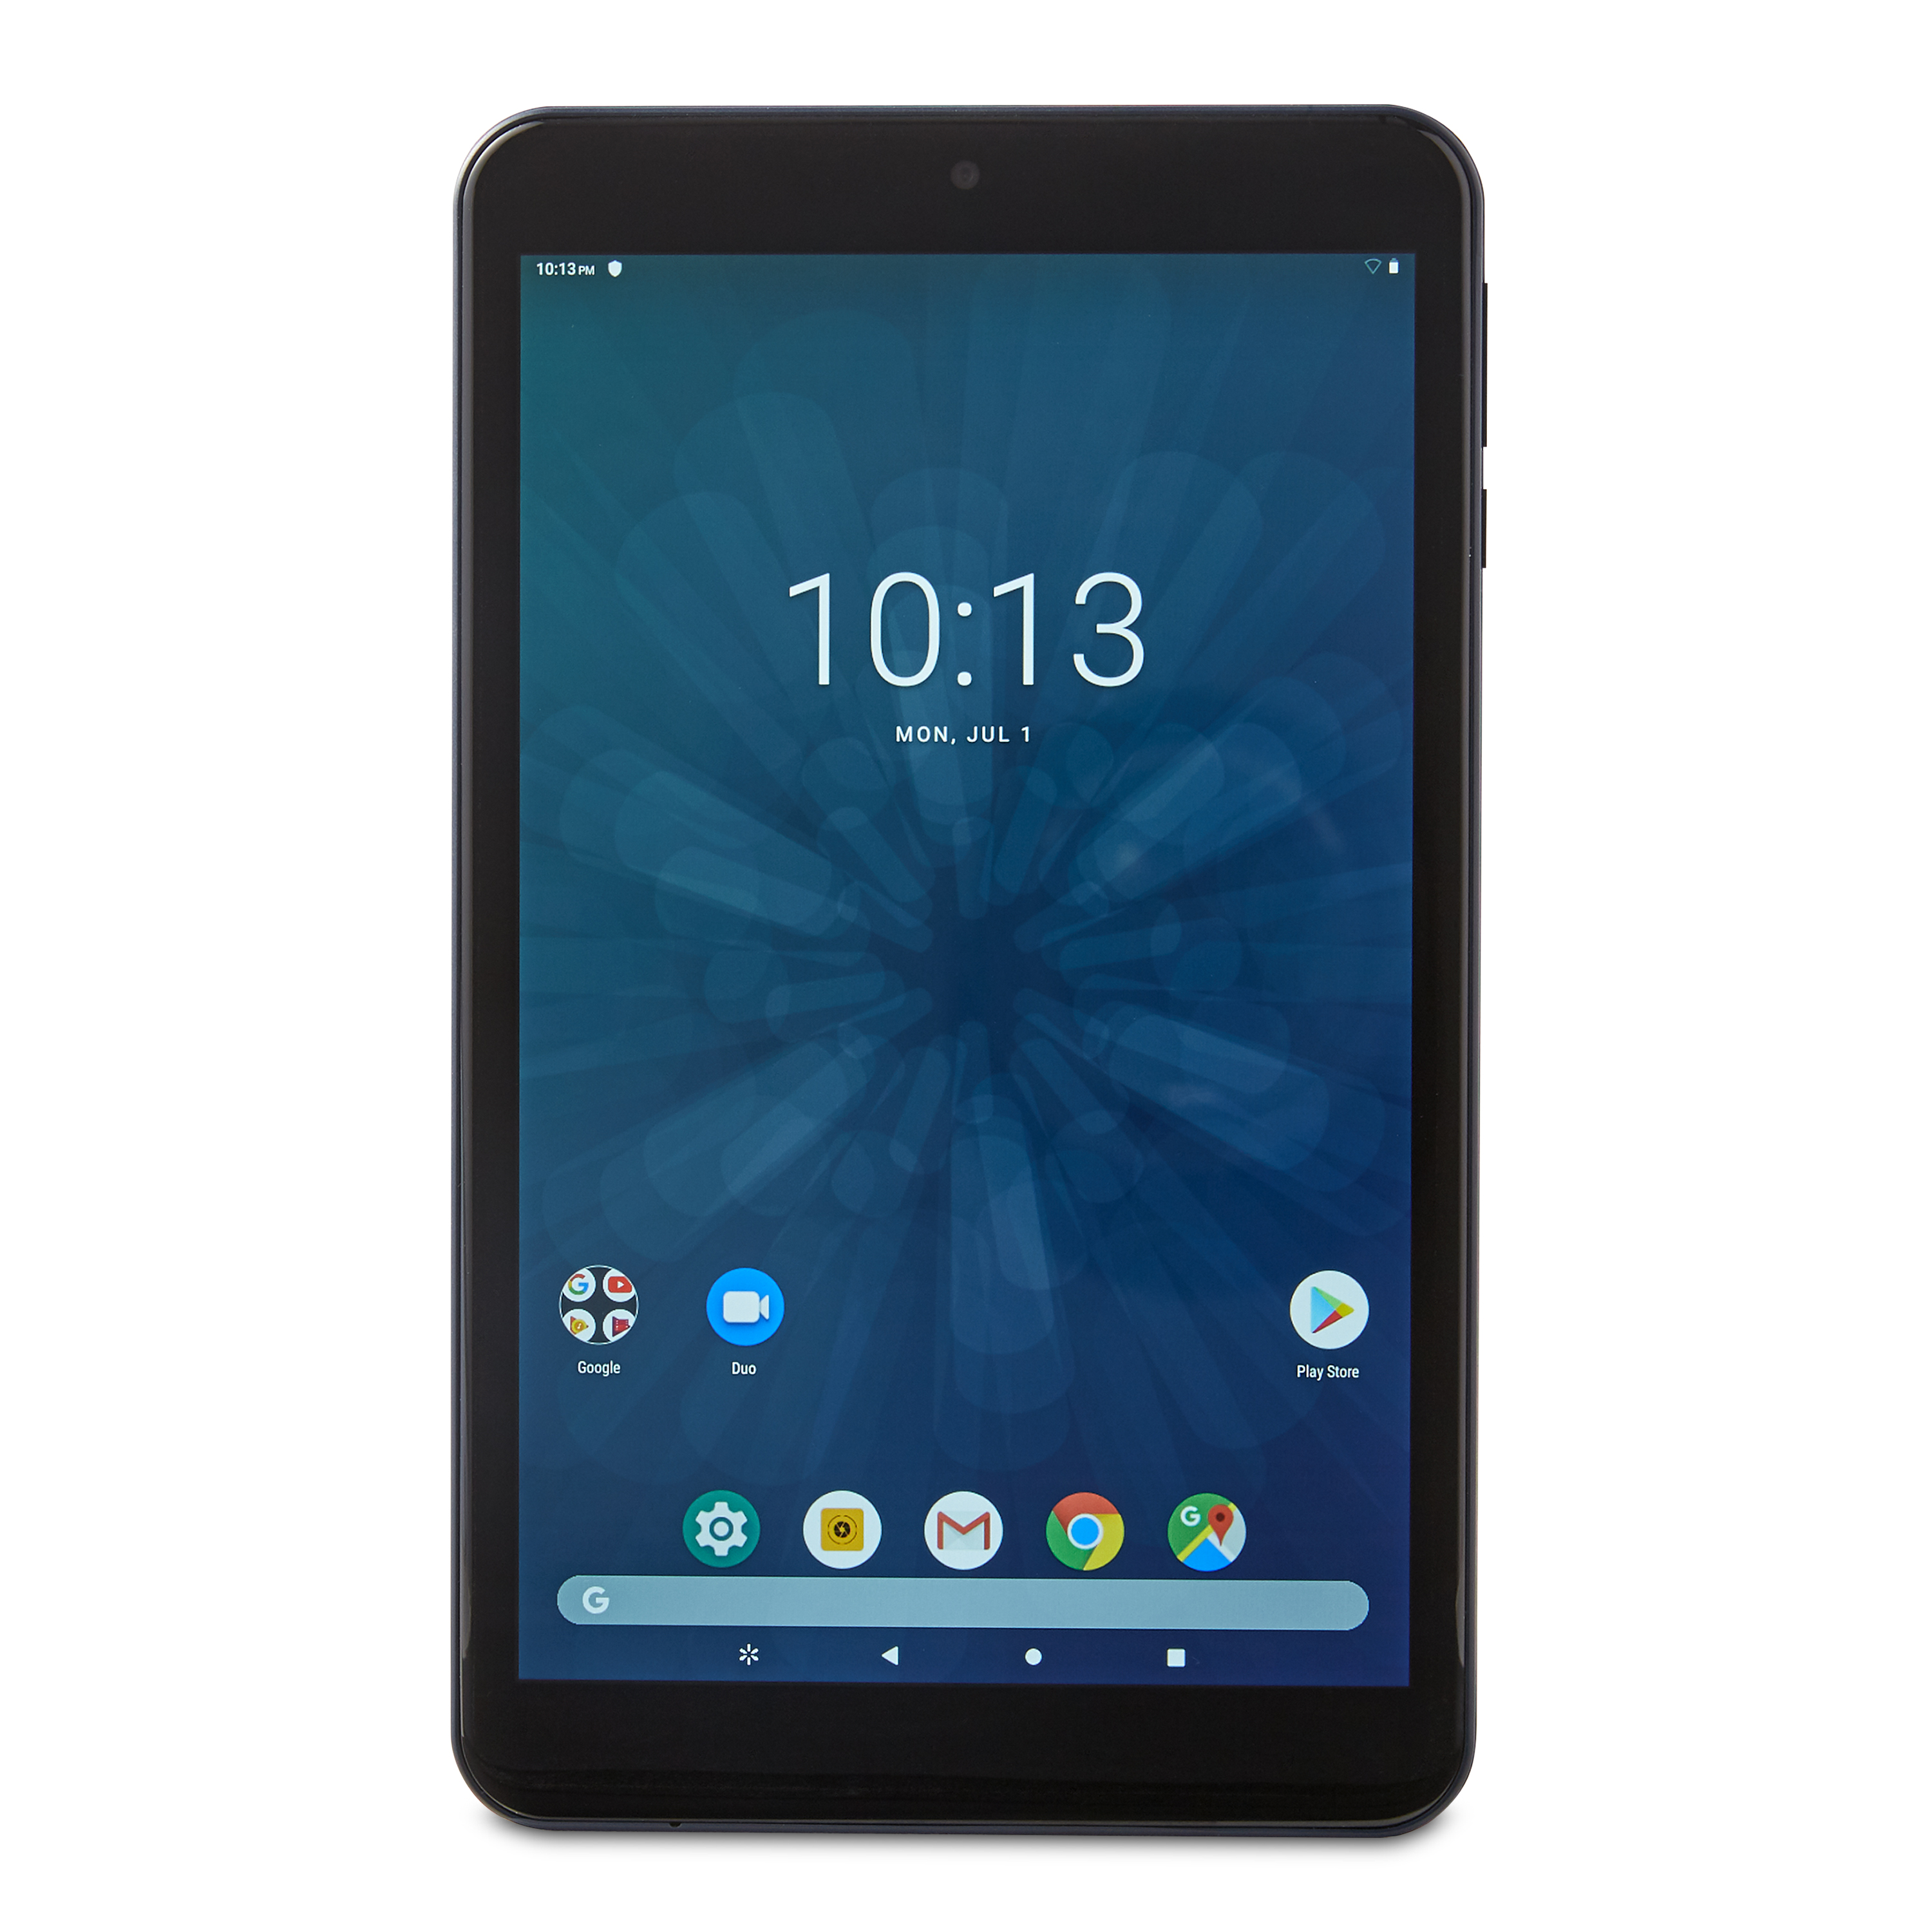 Walmart's Onn Android tablets now available from $64 - 9to5Google